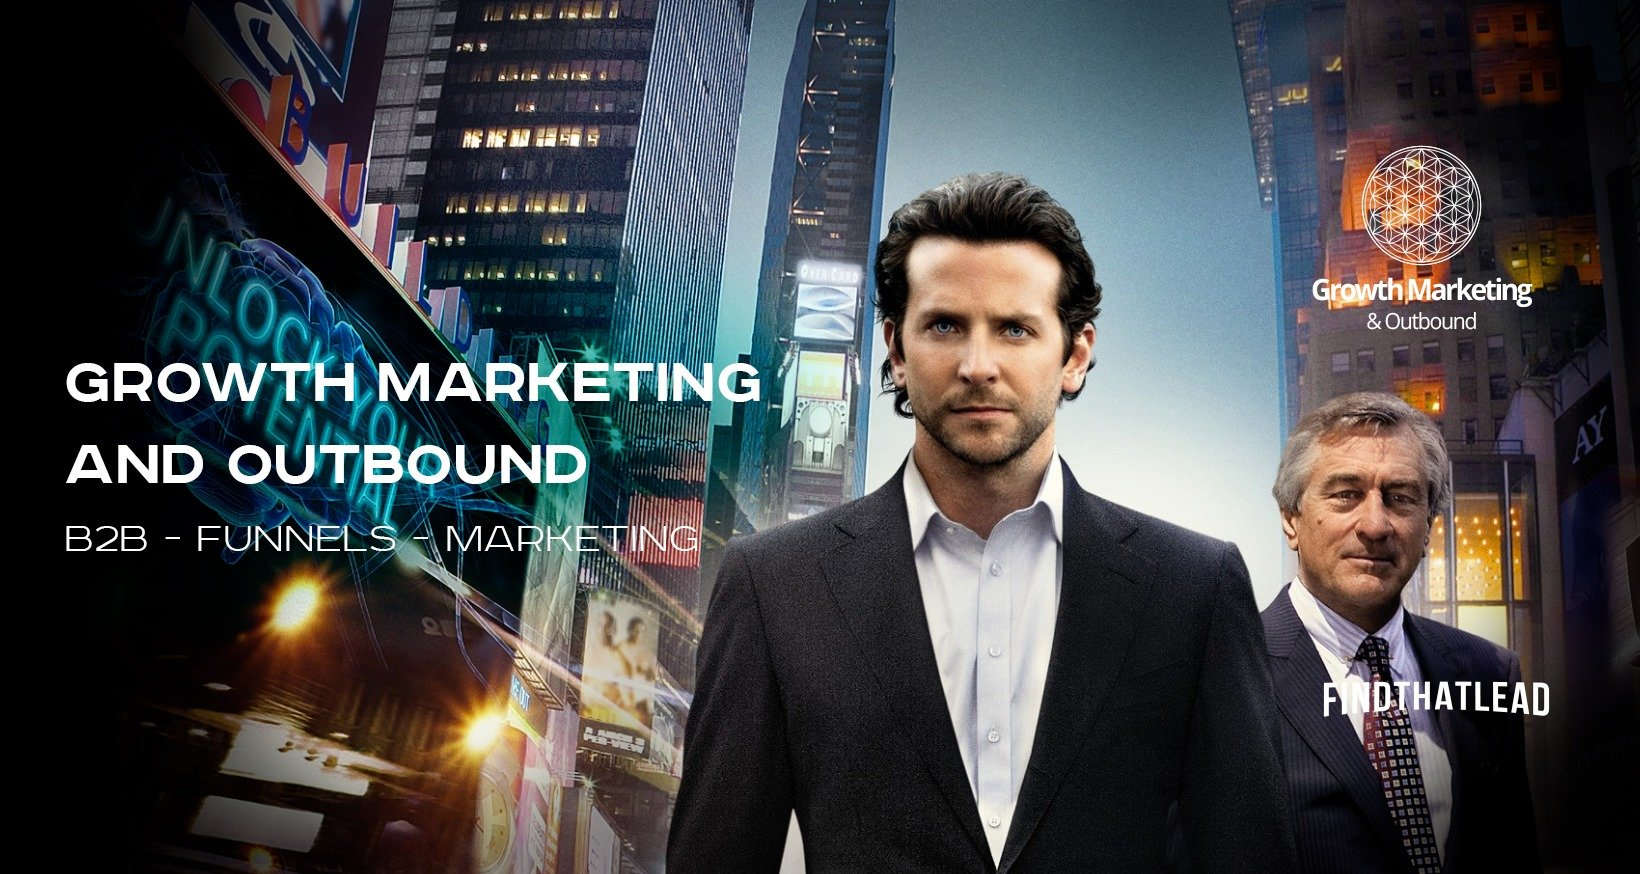 Growth Marketing and Outbound Facebook Group